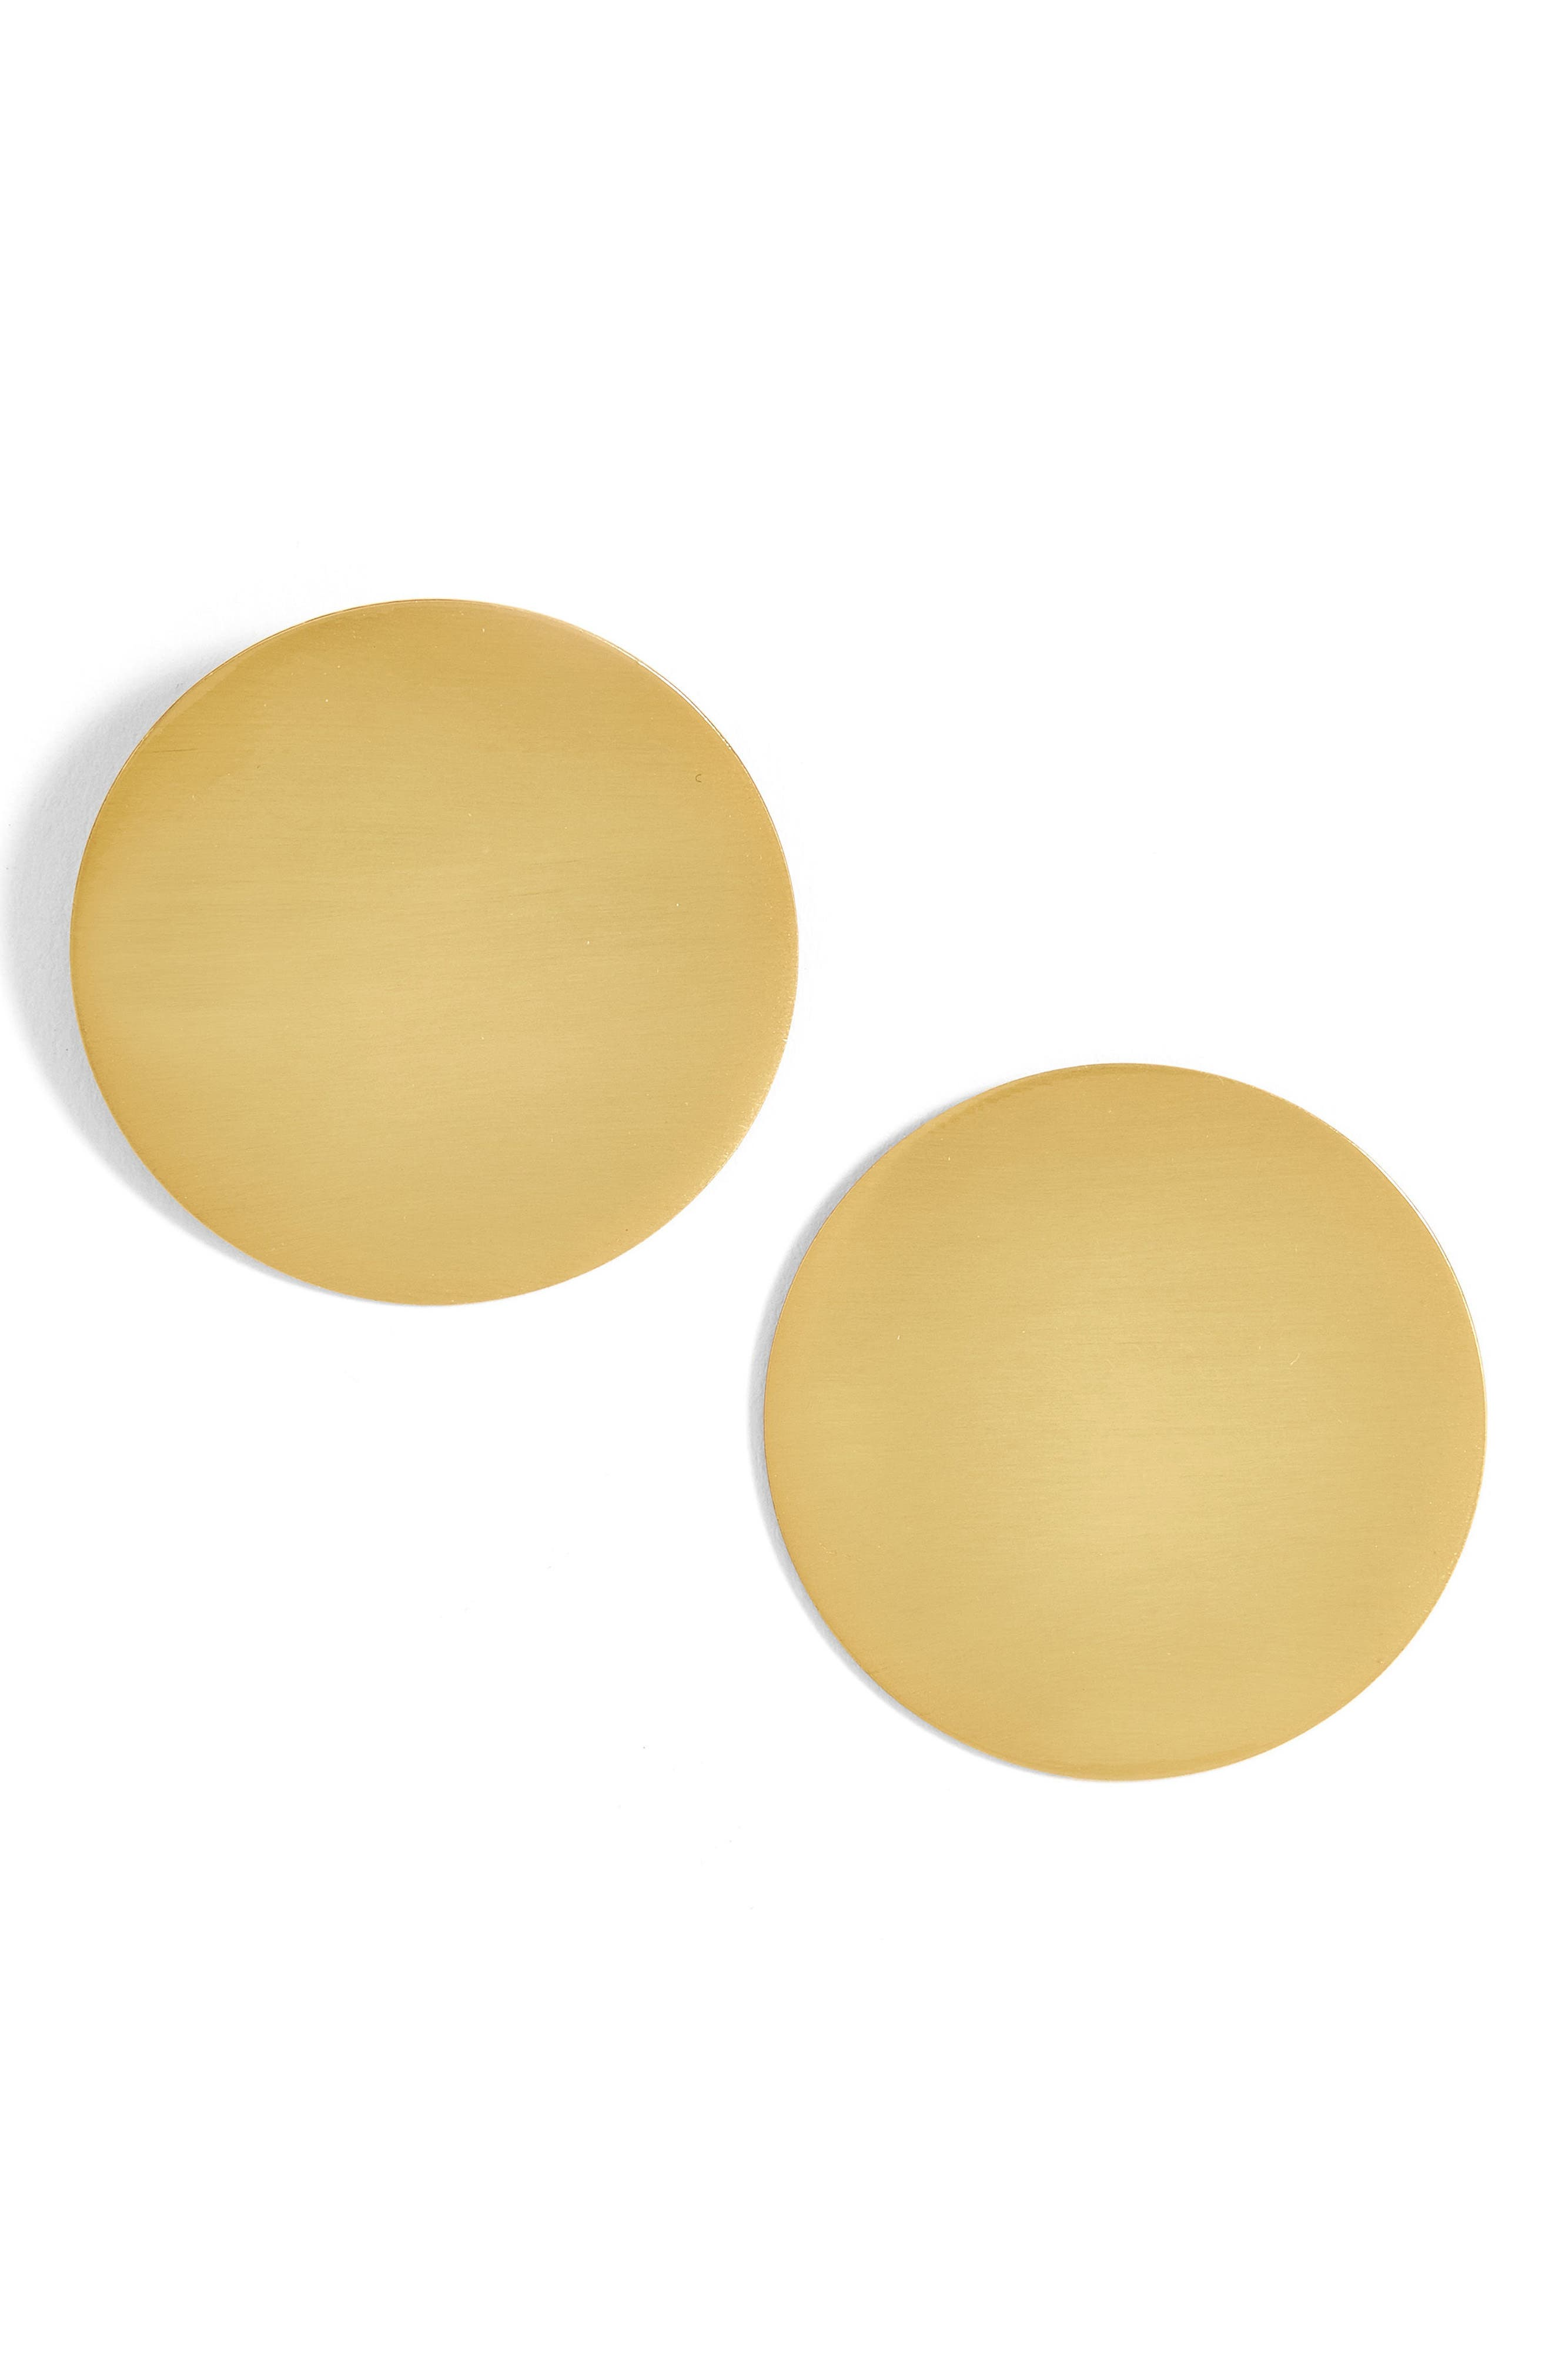 Cora Disk Stud Earrings,                         Main,                         color, Gold